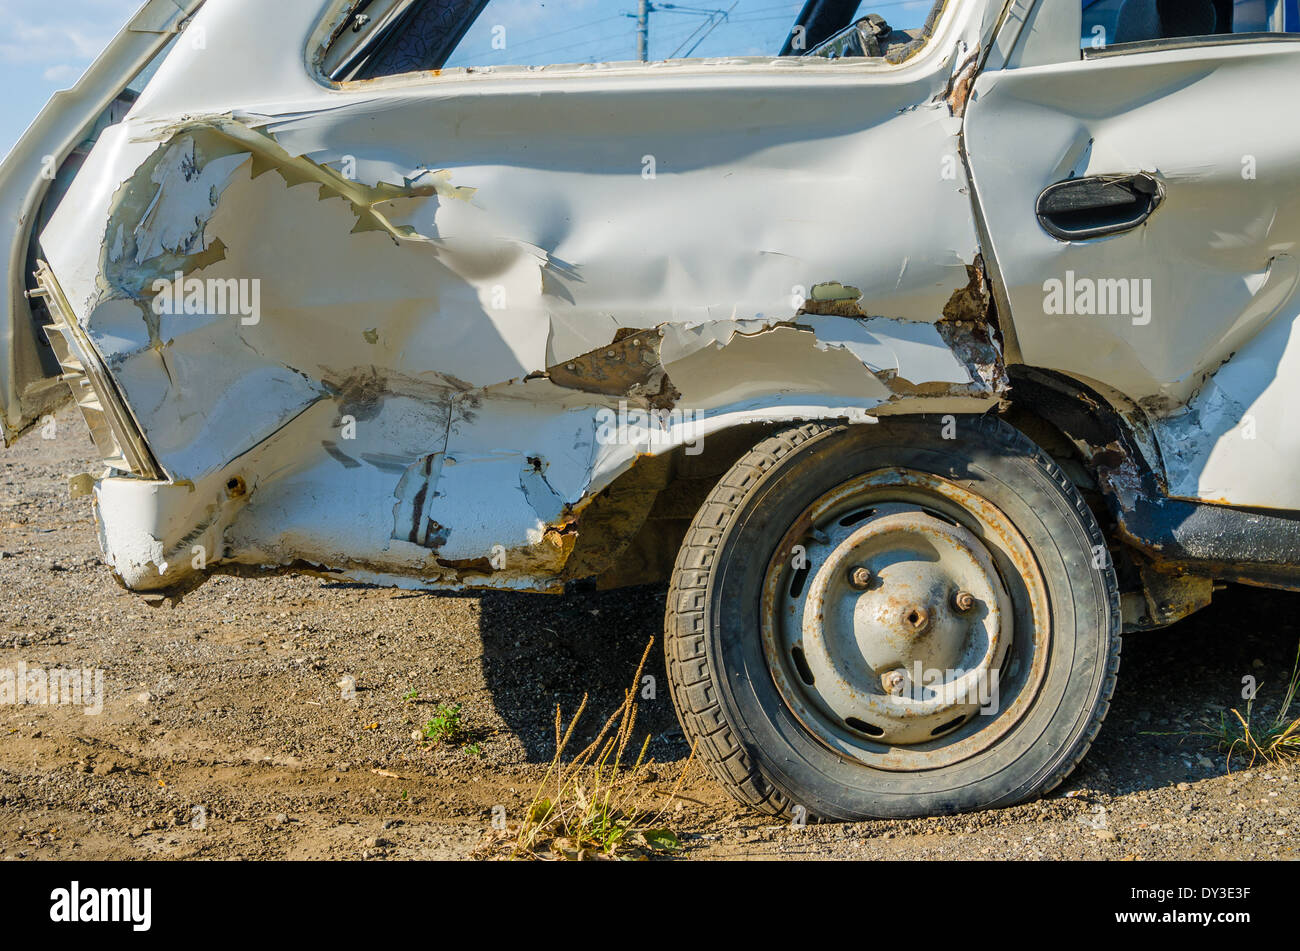 Closeup of a car that was badly damaged in a sideswipe car accident. - Stock Image